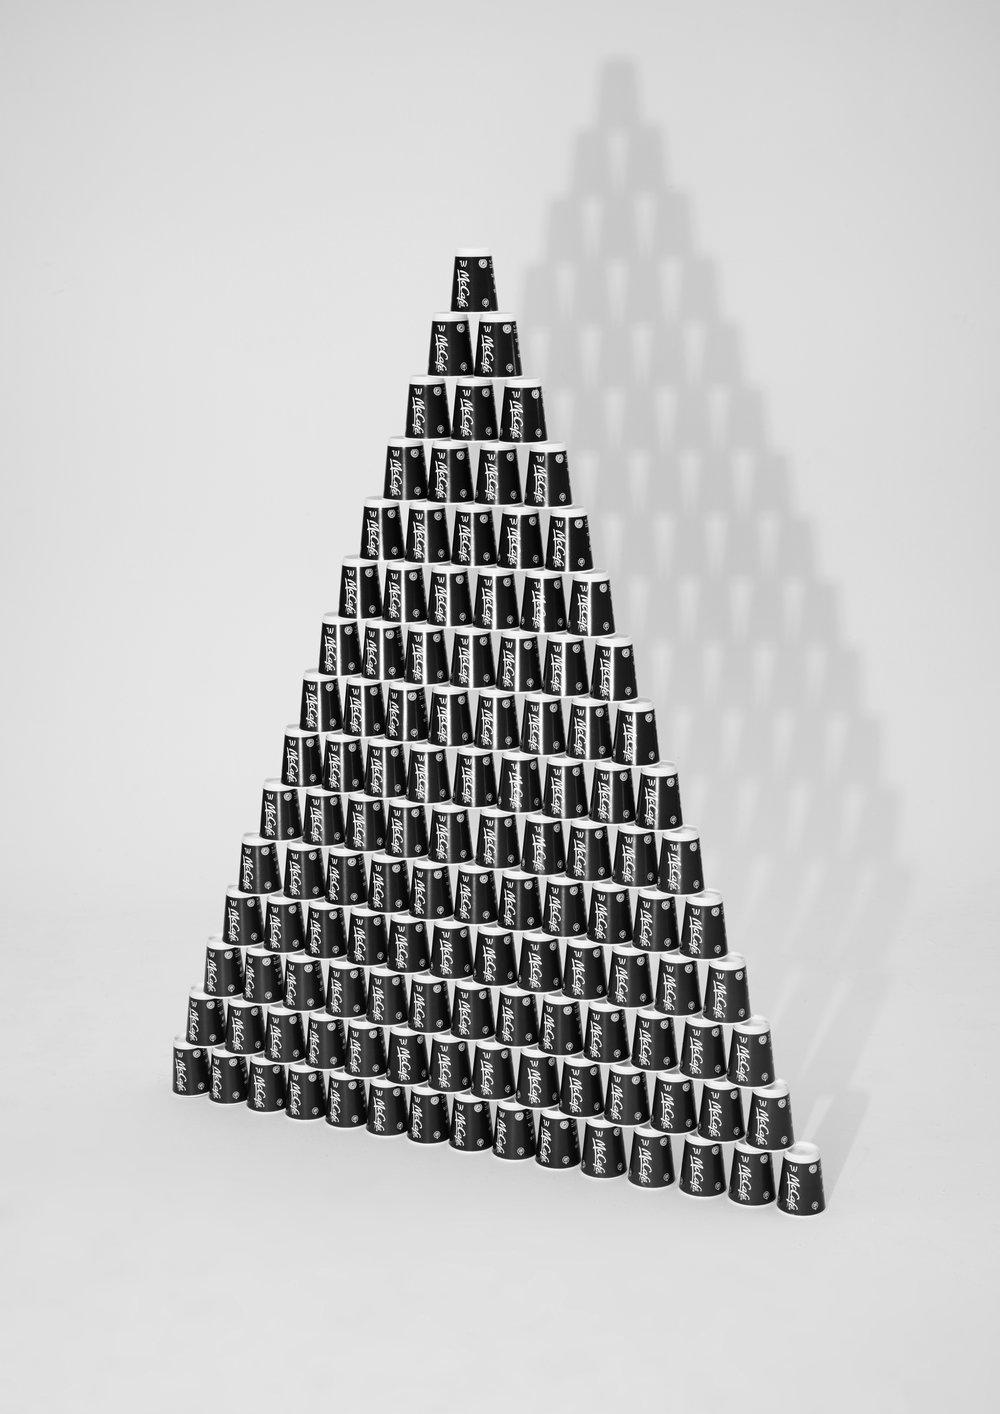 gareth_williams_150_of_550_mcdonalds_cups.jpg